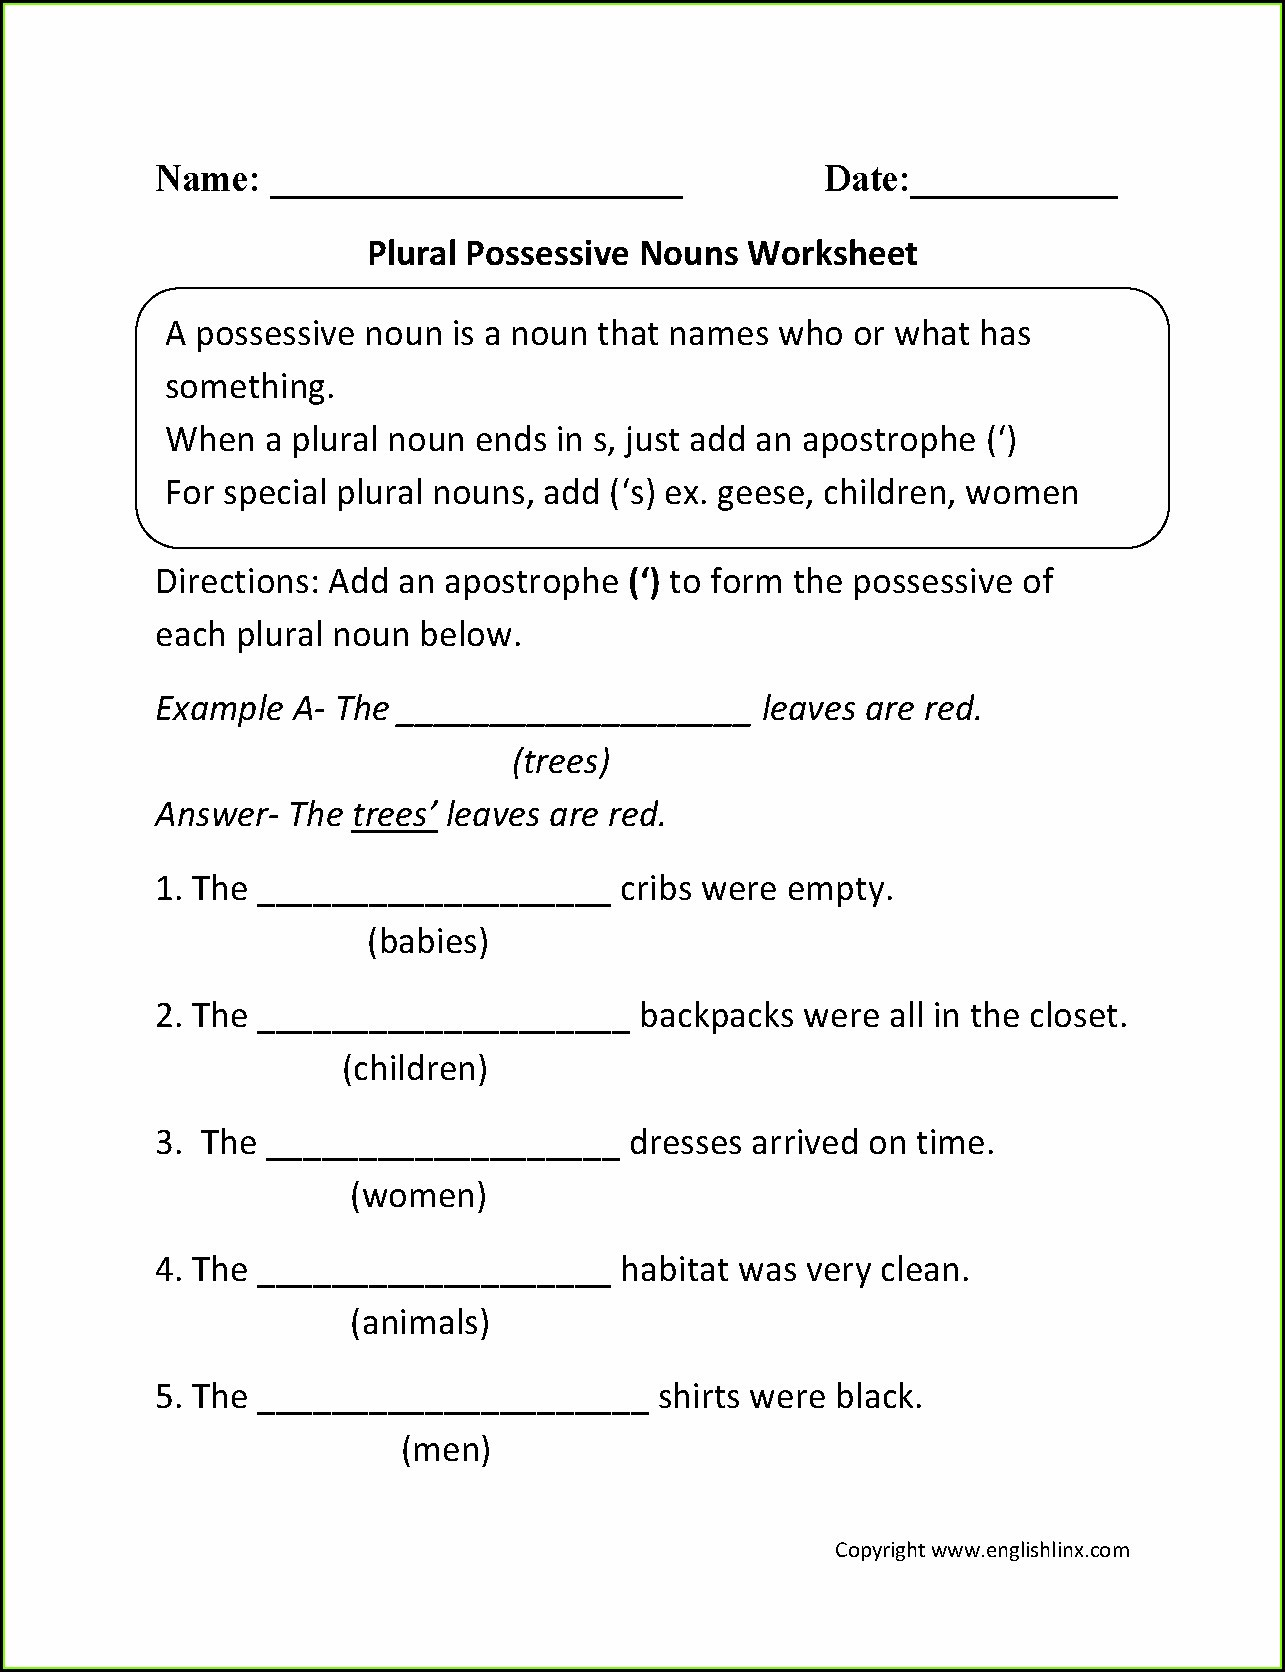 Possessive Pronouns Worksheet 5th Grade Possessive Pronouns Worksheet 5th Grade